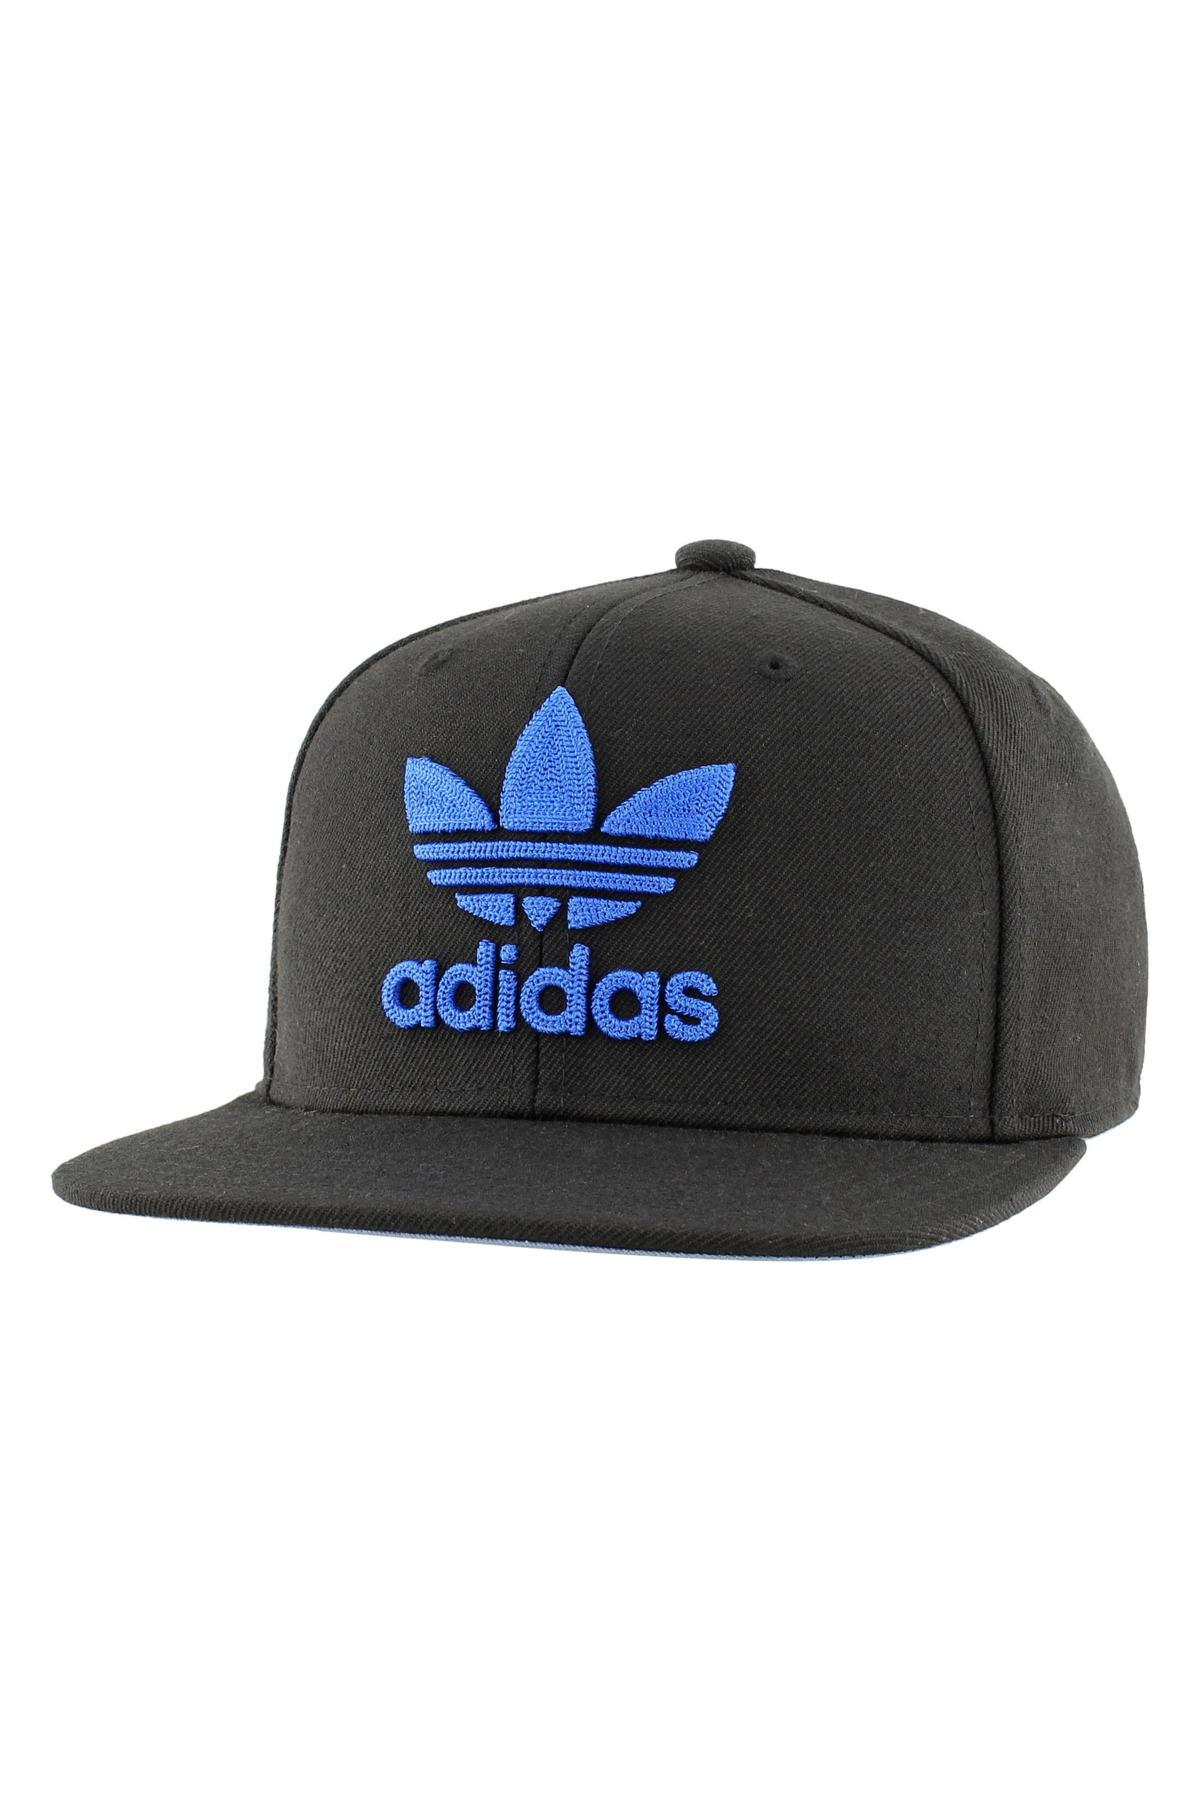 d44e1ee70eb Lyst - adidas Originals Trefoil Chain Snapback in Black for Men